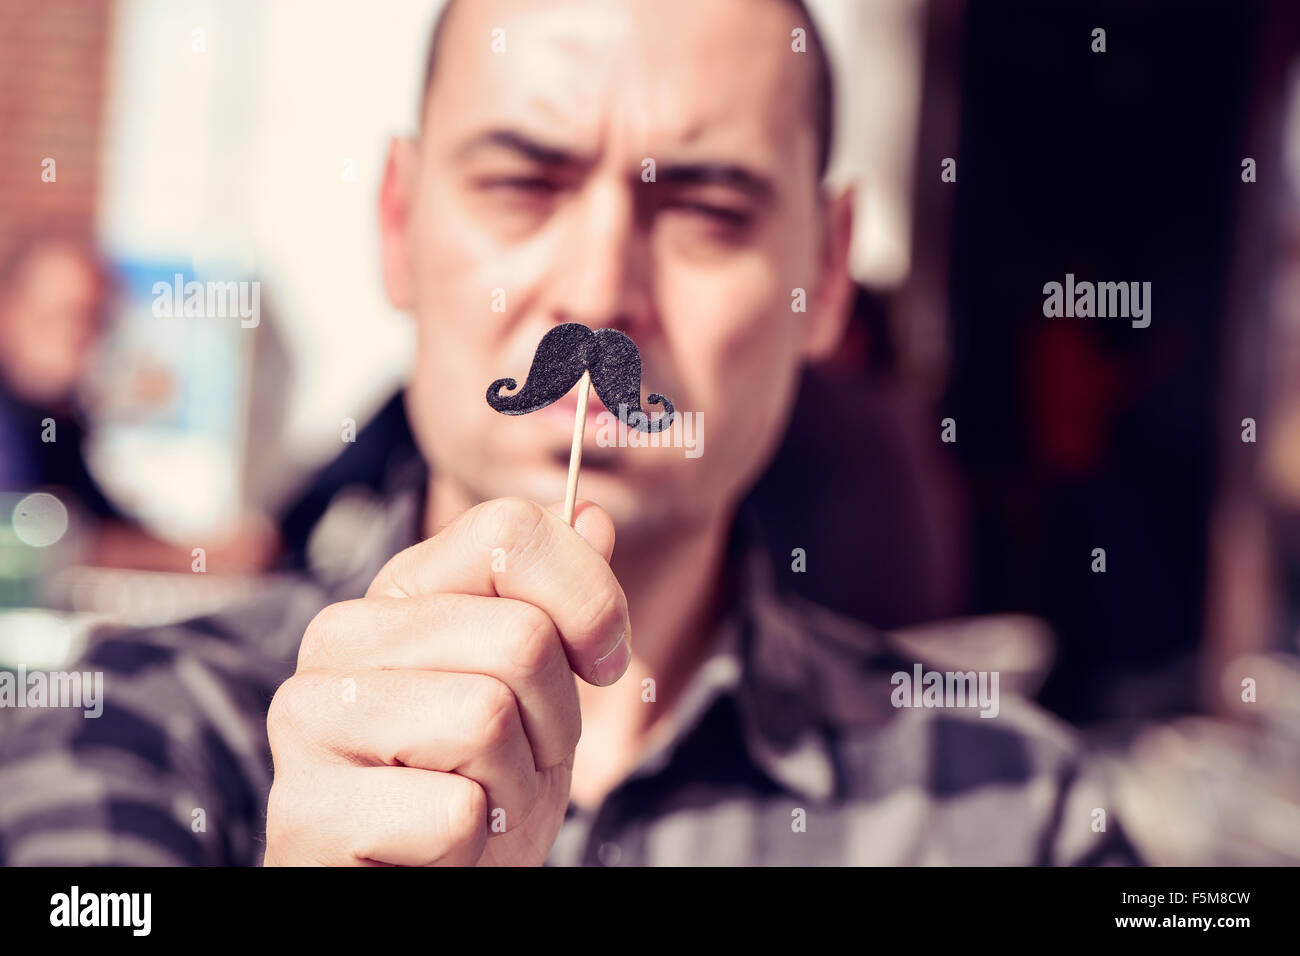 Un young caucasian man holding a fake moustache dans un bâton en face de son visage Photo Stock